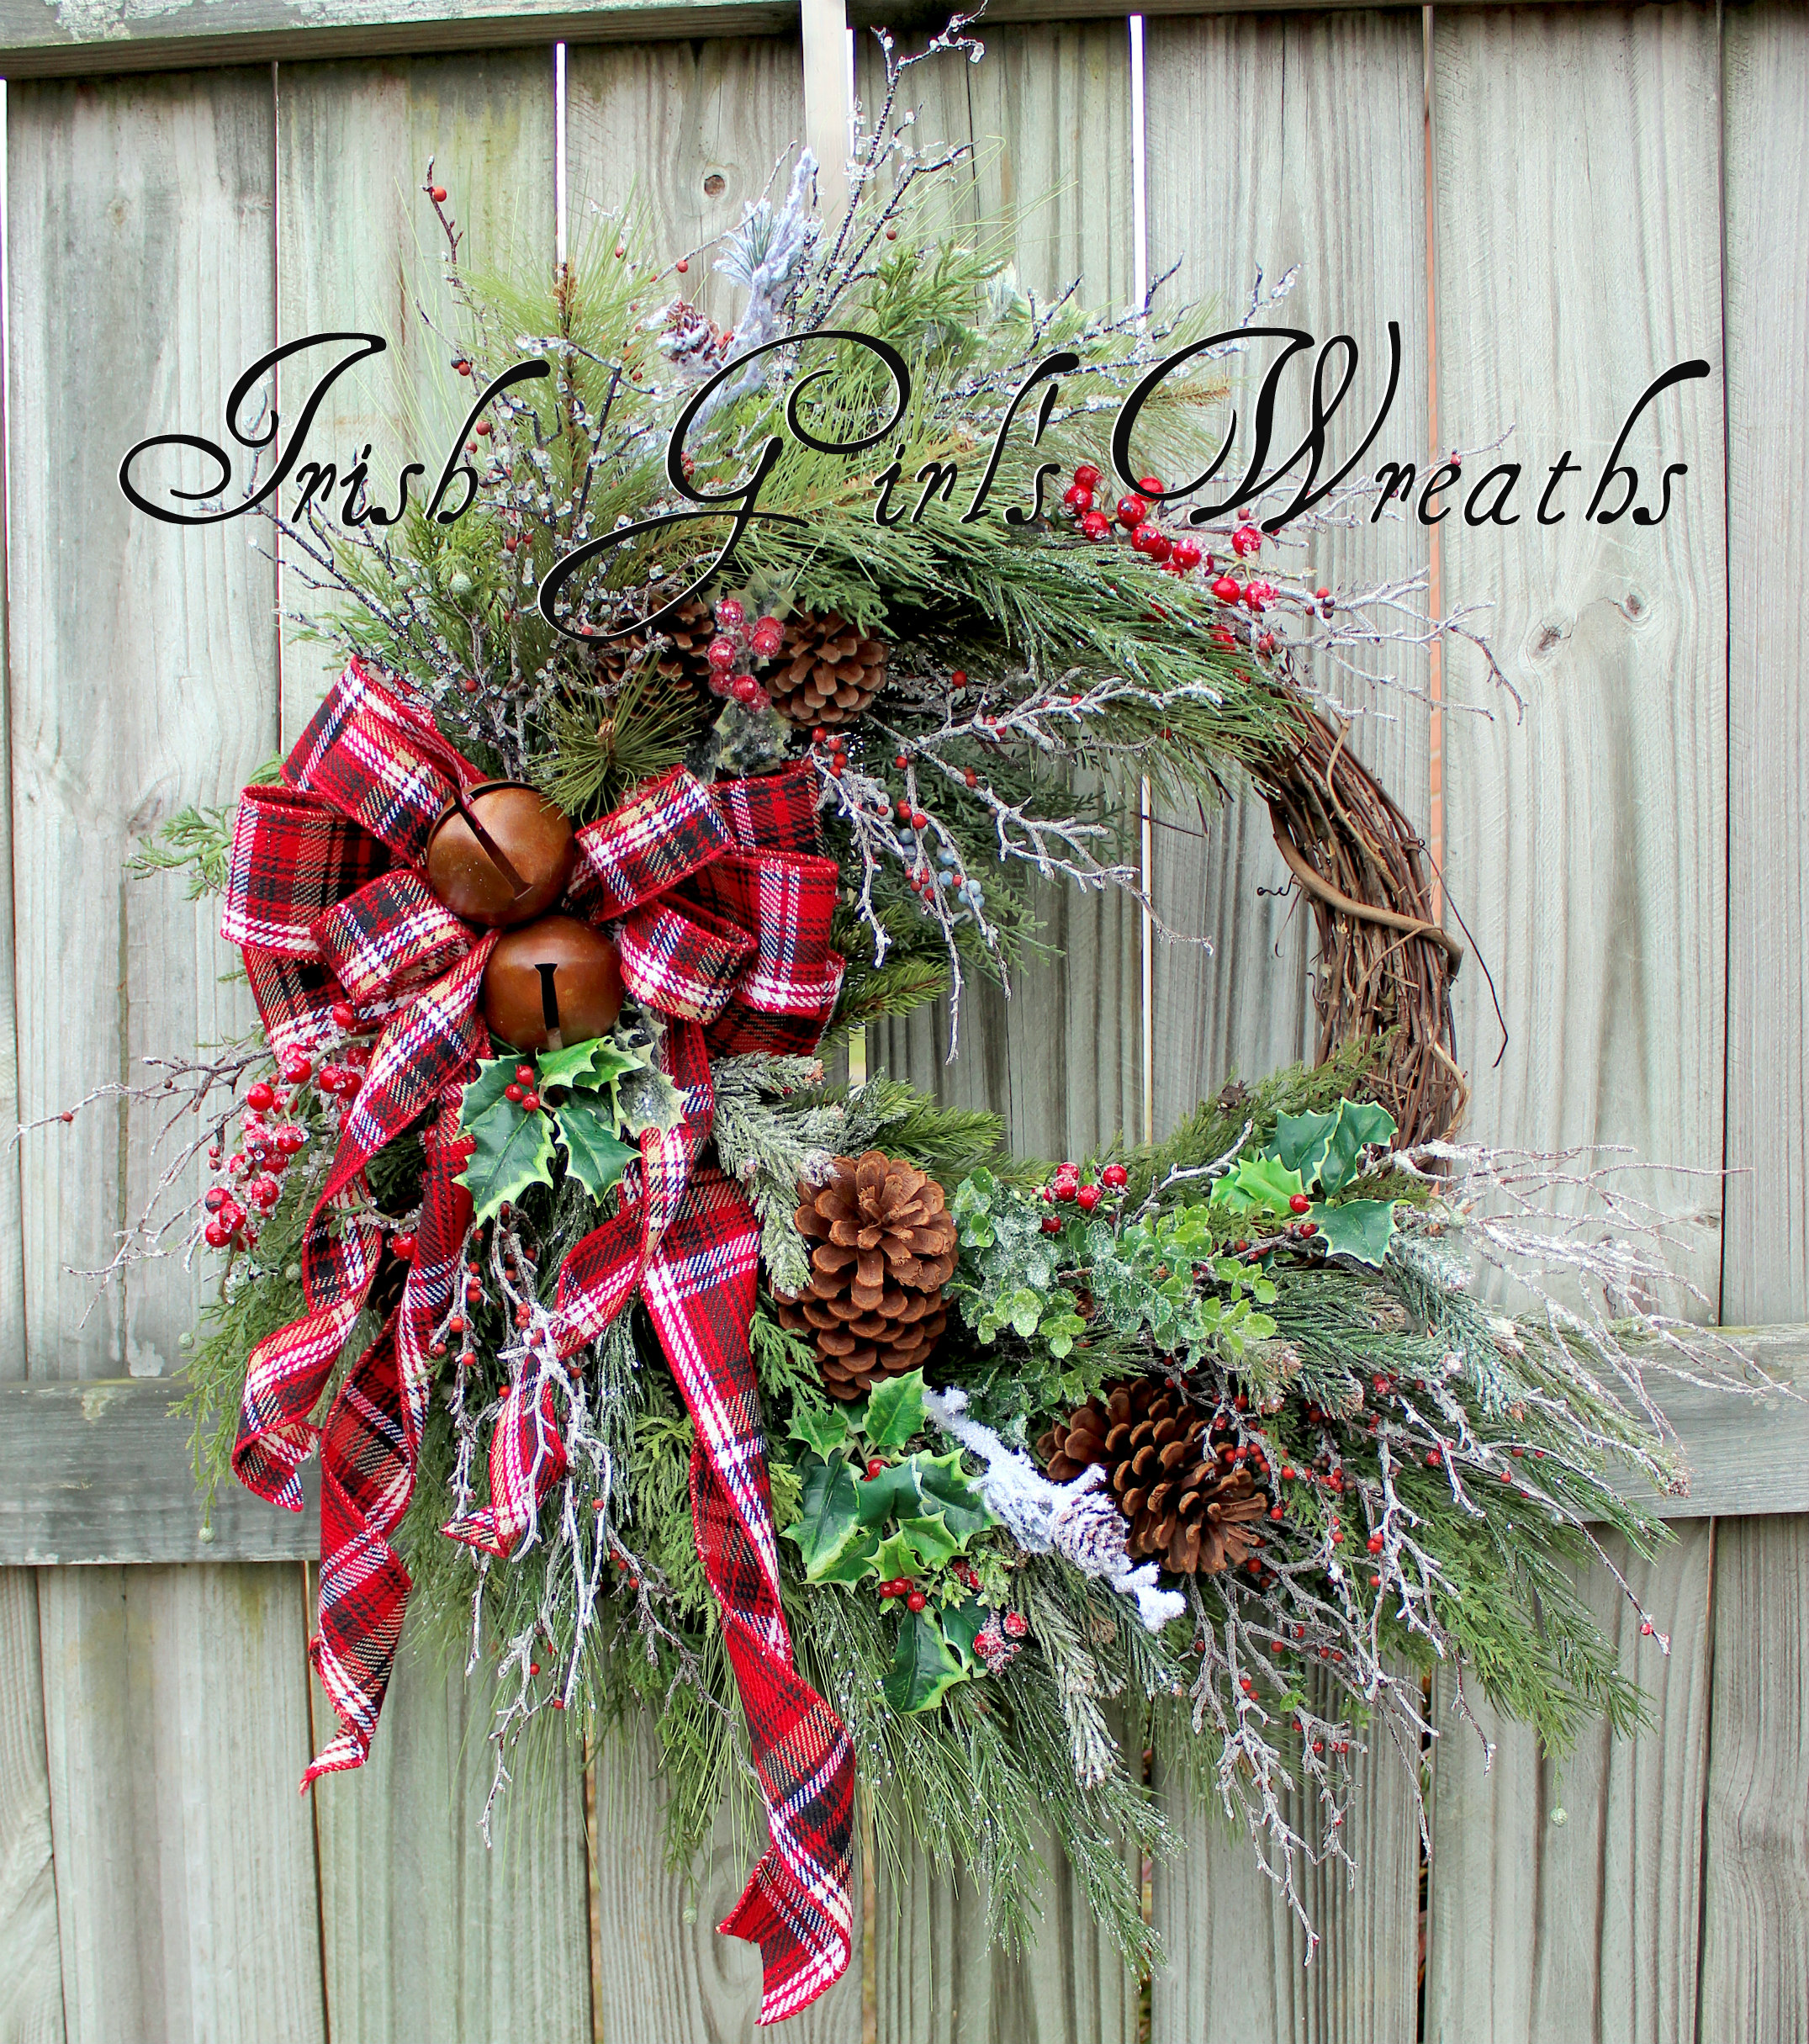 Rustic Winter Woods Cabin Country Christmas Wreath, XL Tartan Plaid Winter floral decor